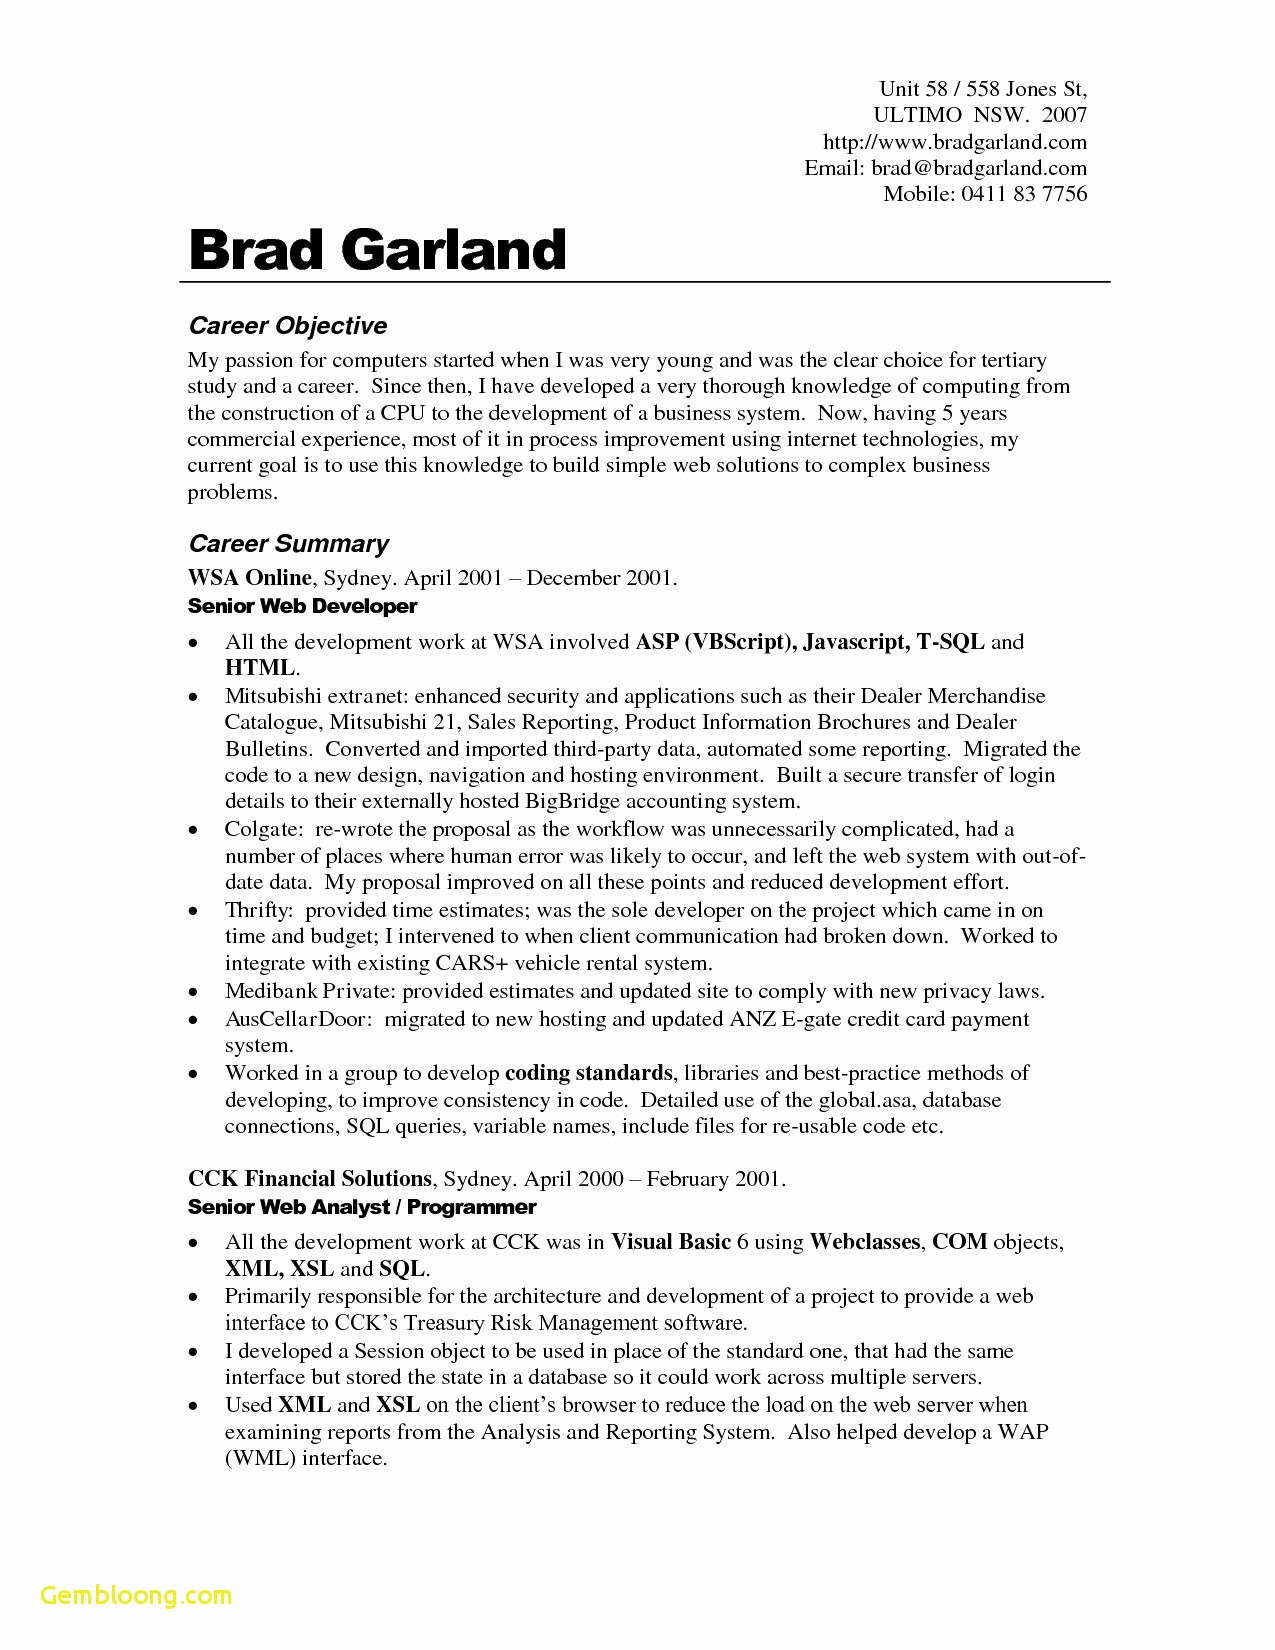 Free Resume Cover Letter Template Download - Trendy Resume Templates New Modern Free Resume Template Download now